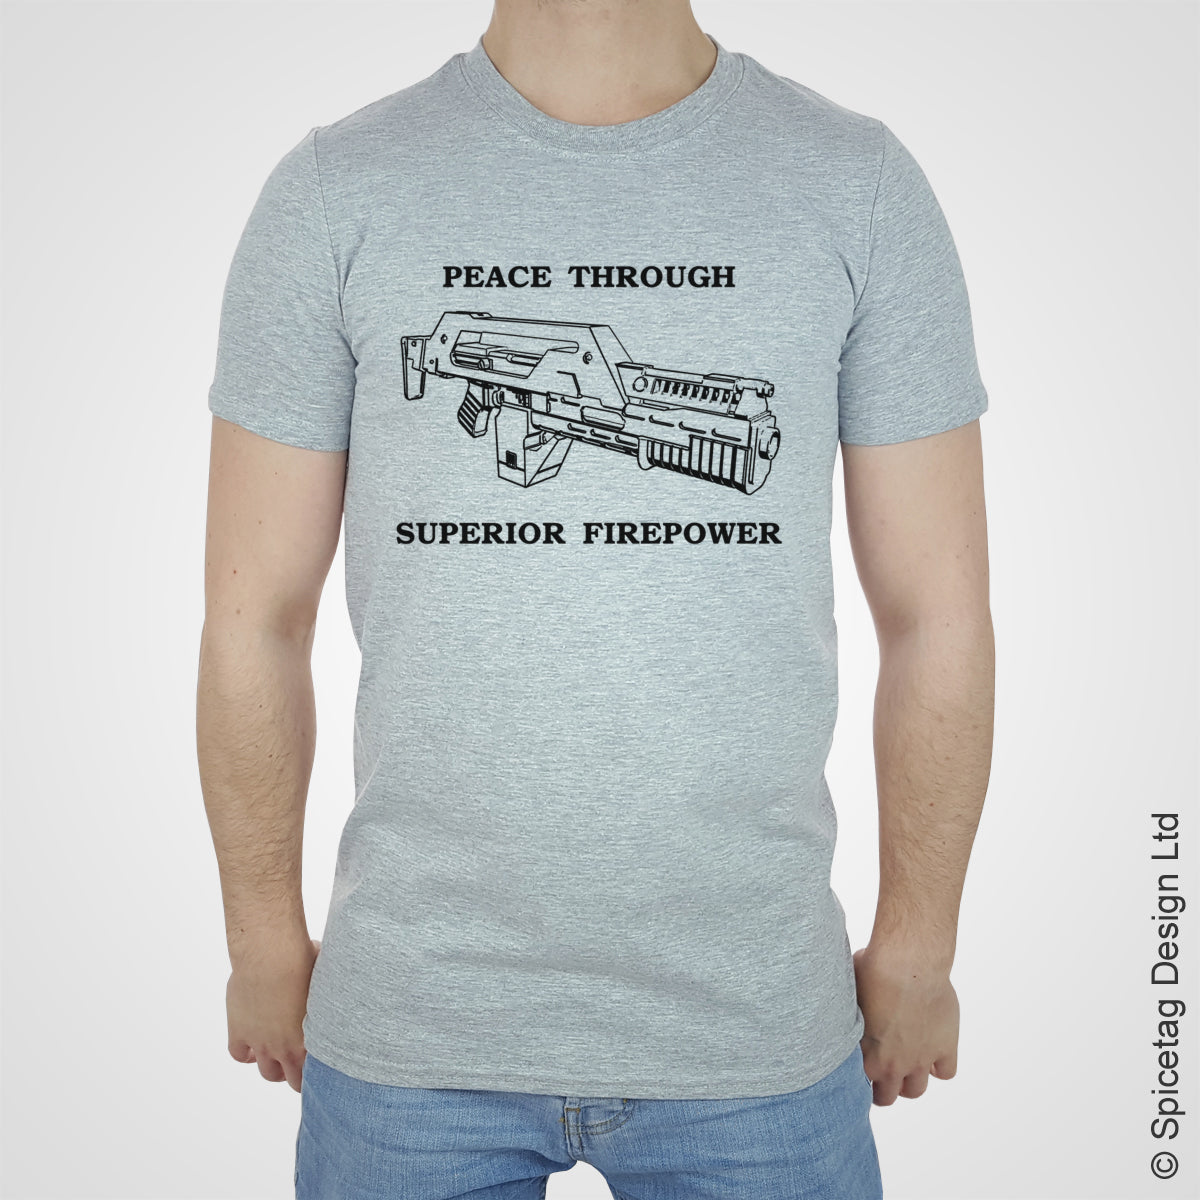 Aliens alien 1986 peace through superior firepower T-shirt T shirt Tshirt Tee spicetag